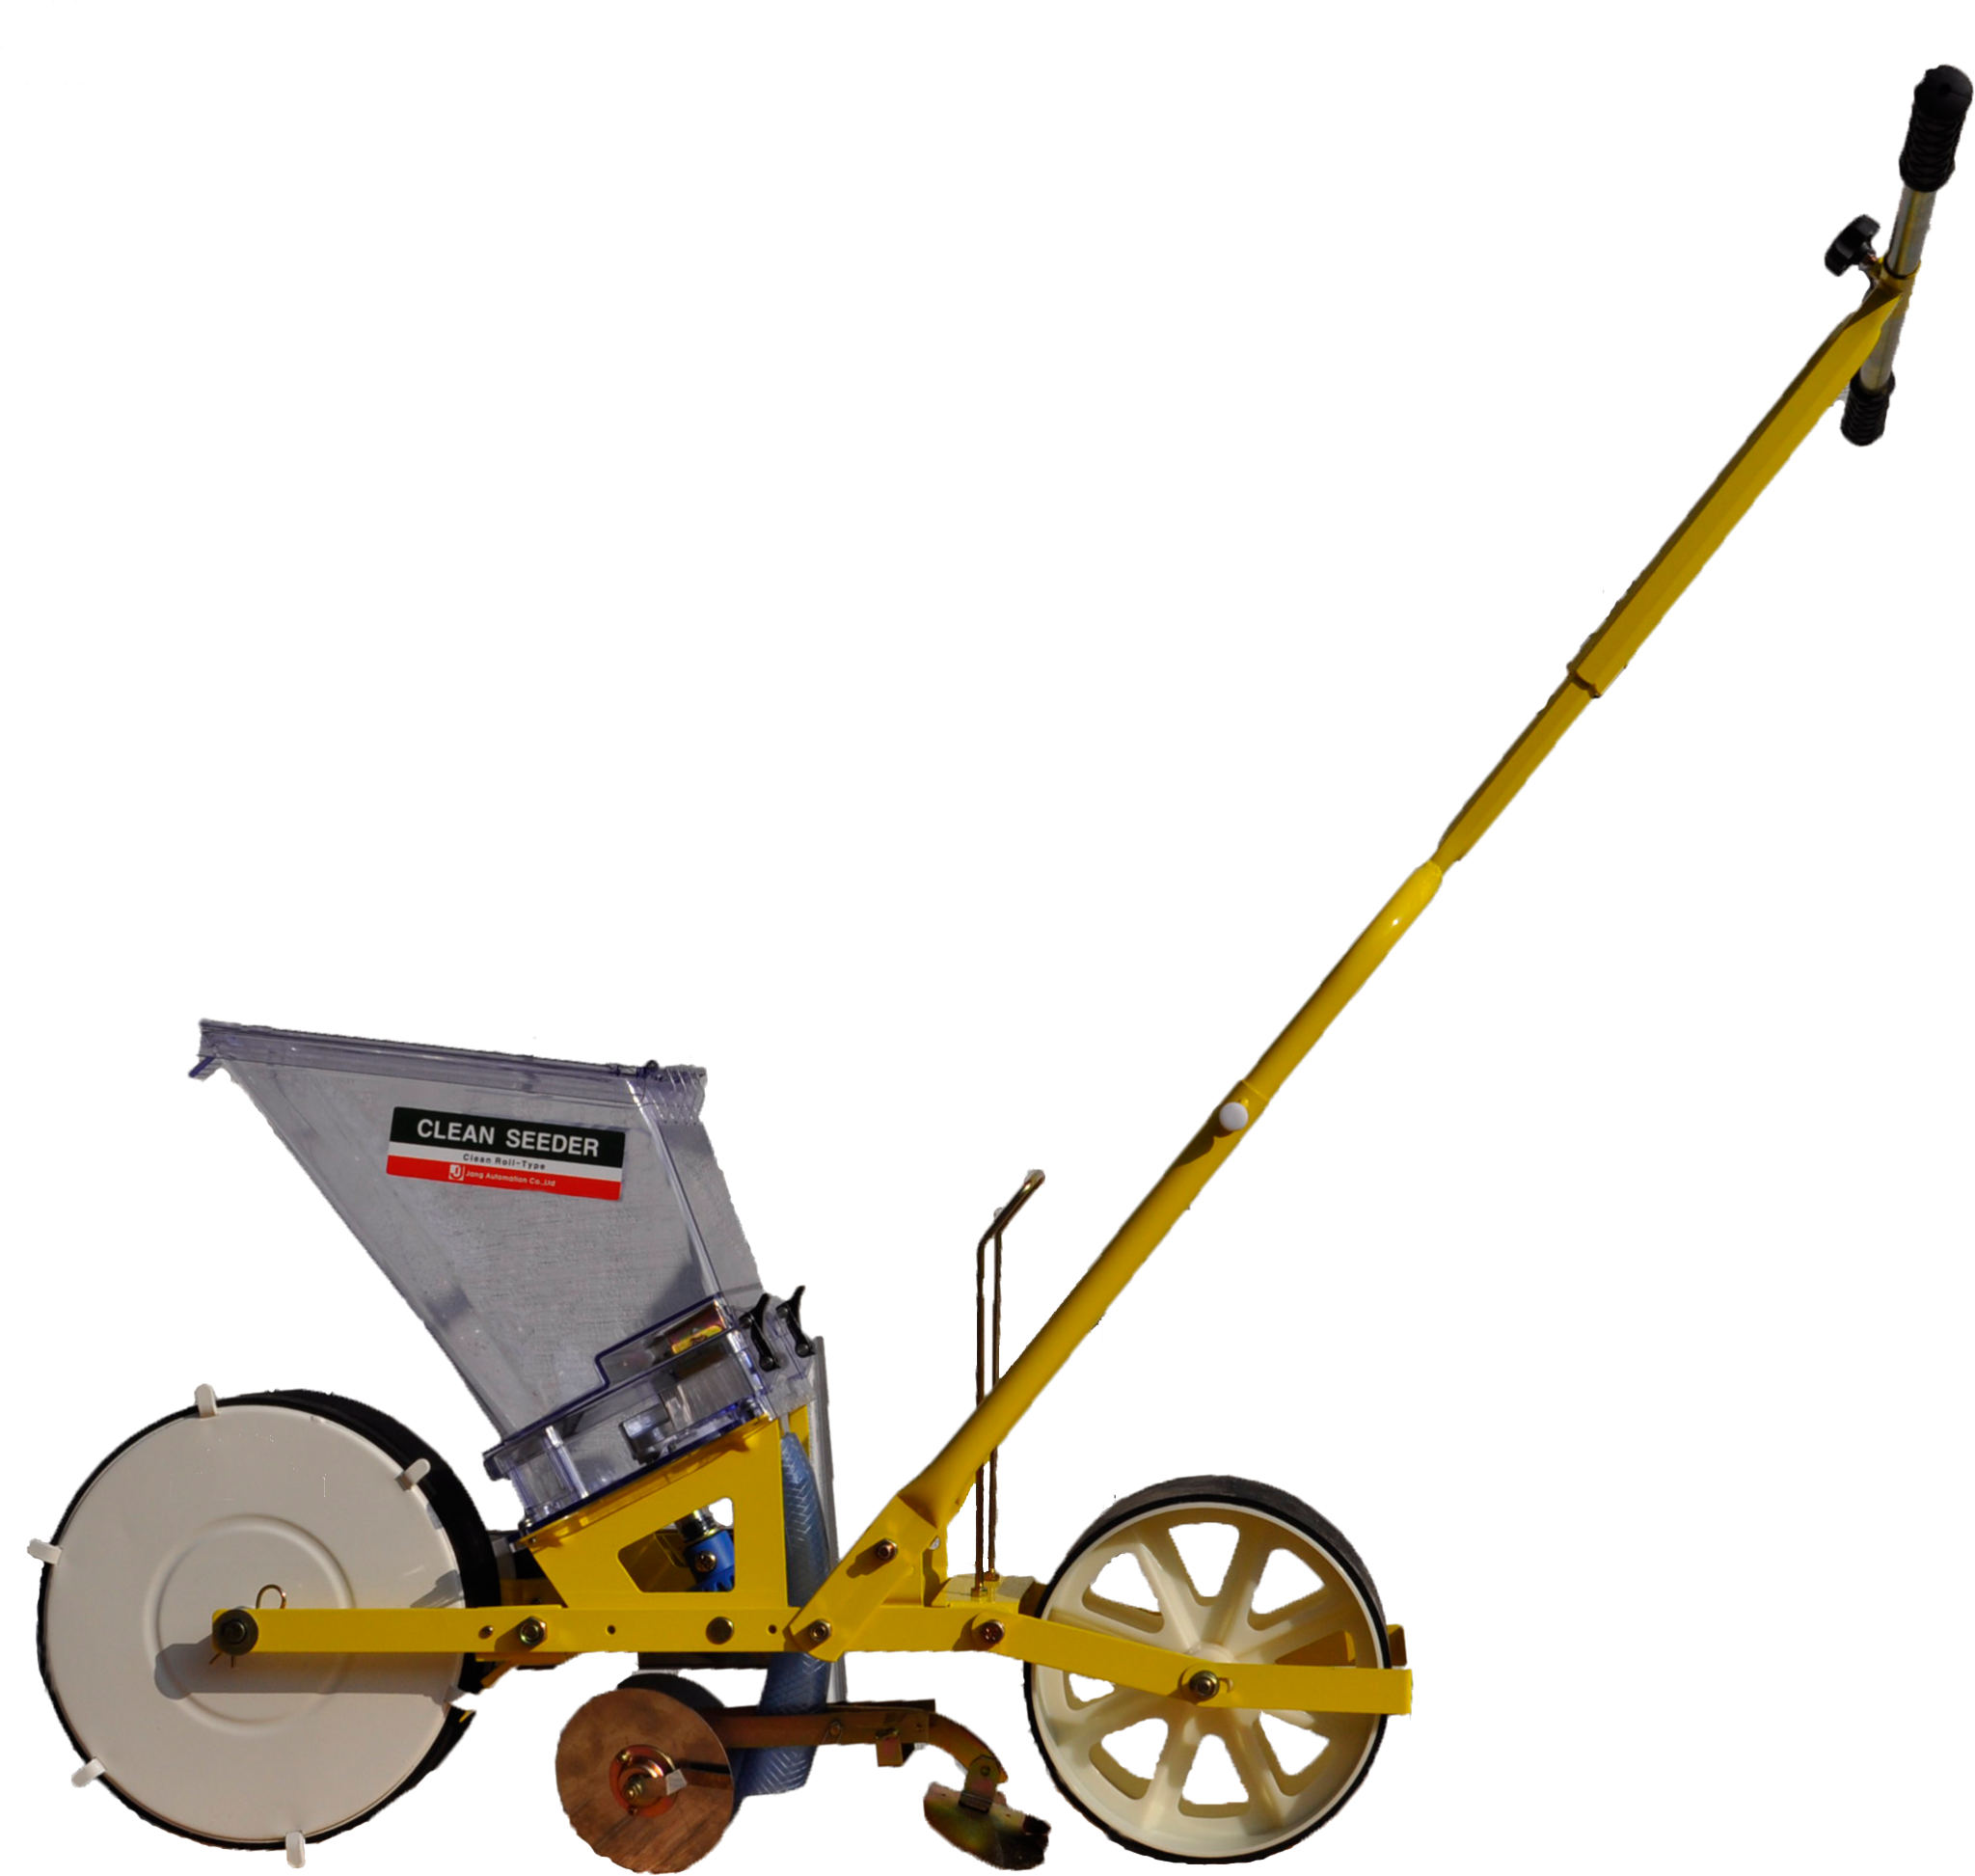 Td 1 Jang Push Style Seeder For Planting Large Seeds Like Beans And Corn